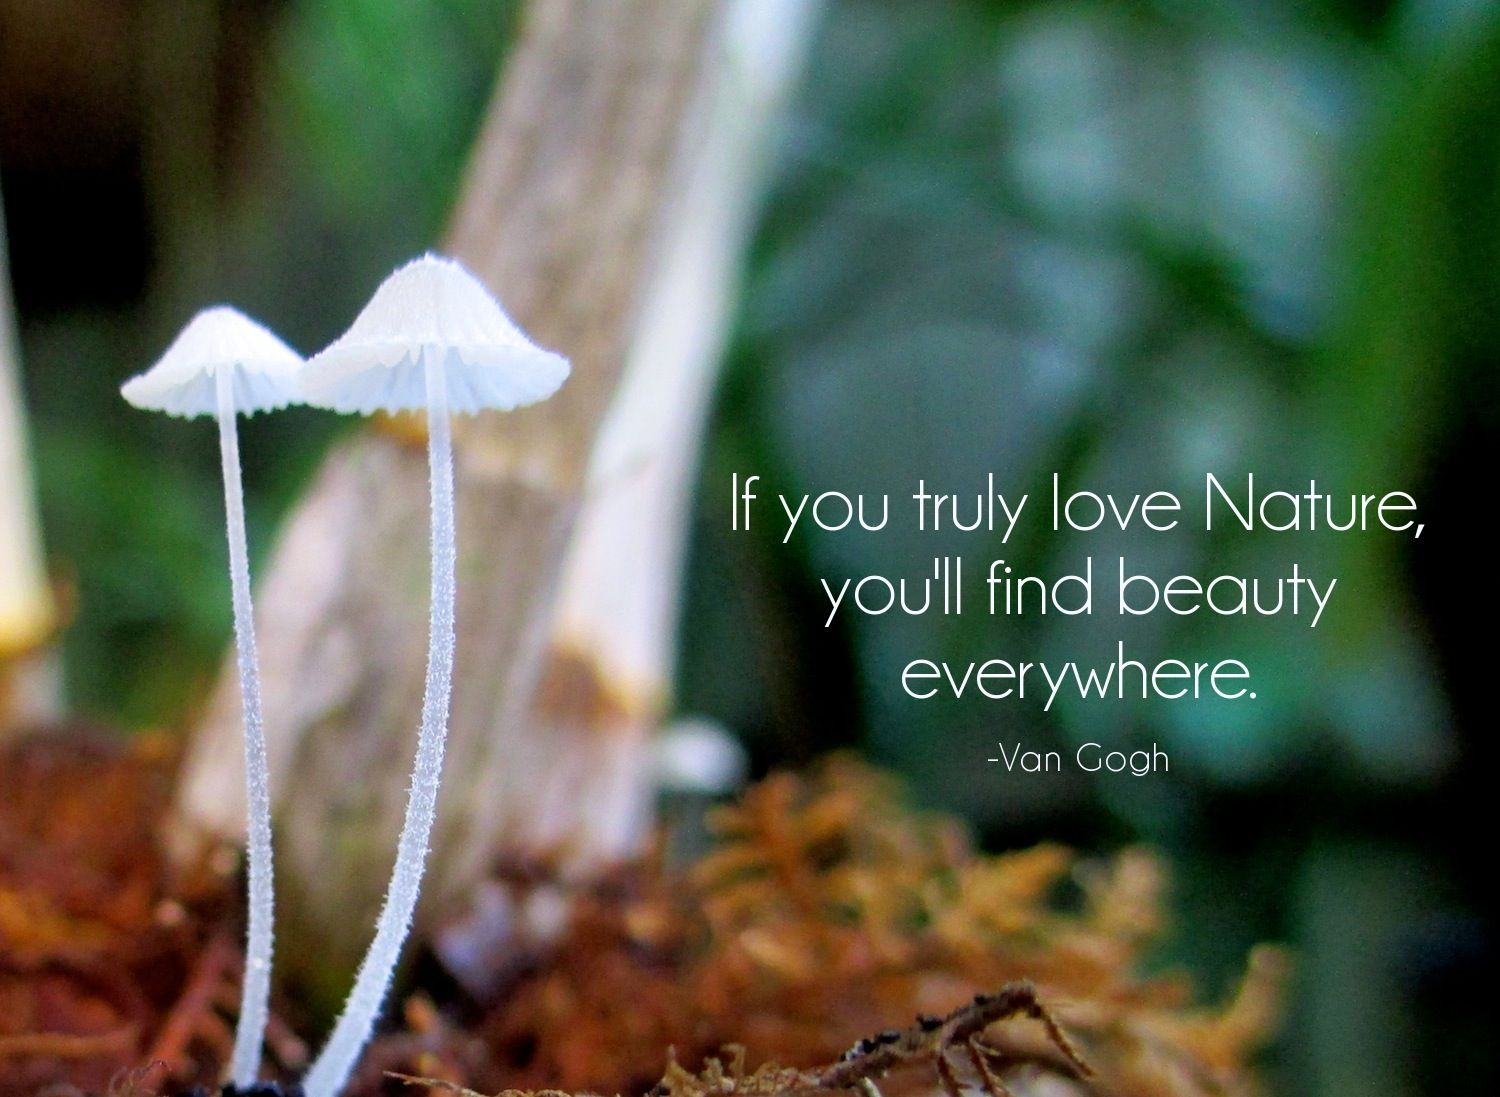 Vincent Van Gogh Nature Quotes Nature Quotes Adventure Nature Quotes Quotes About Photography